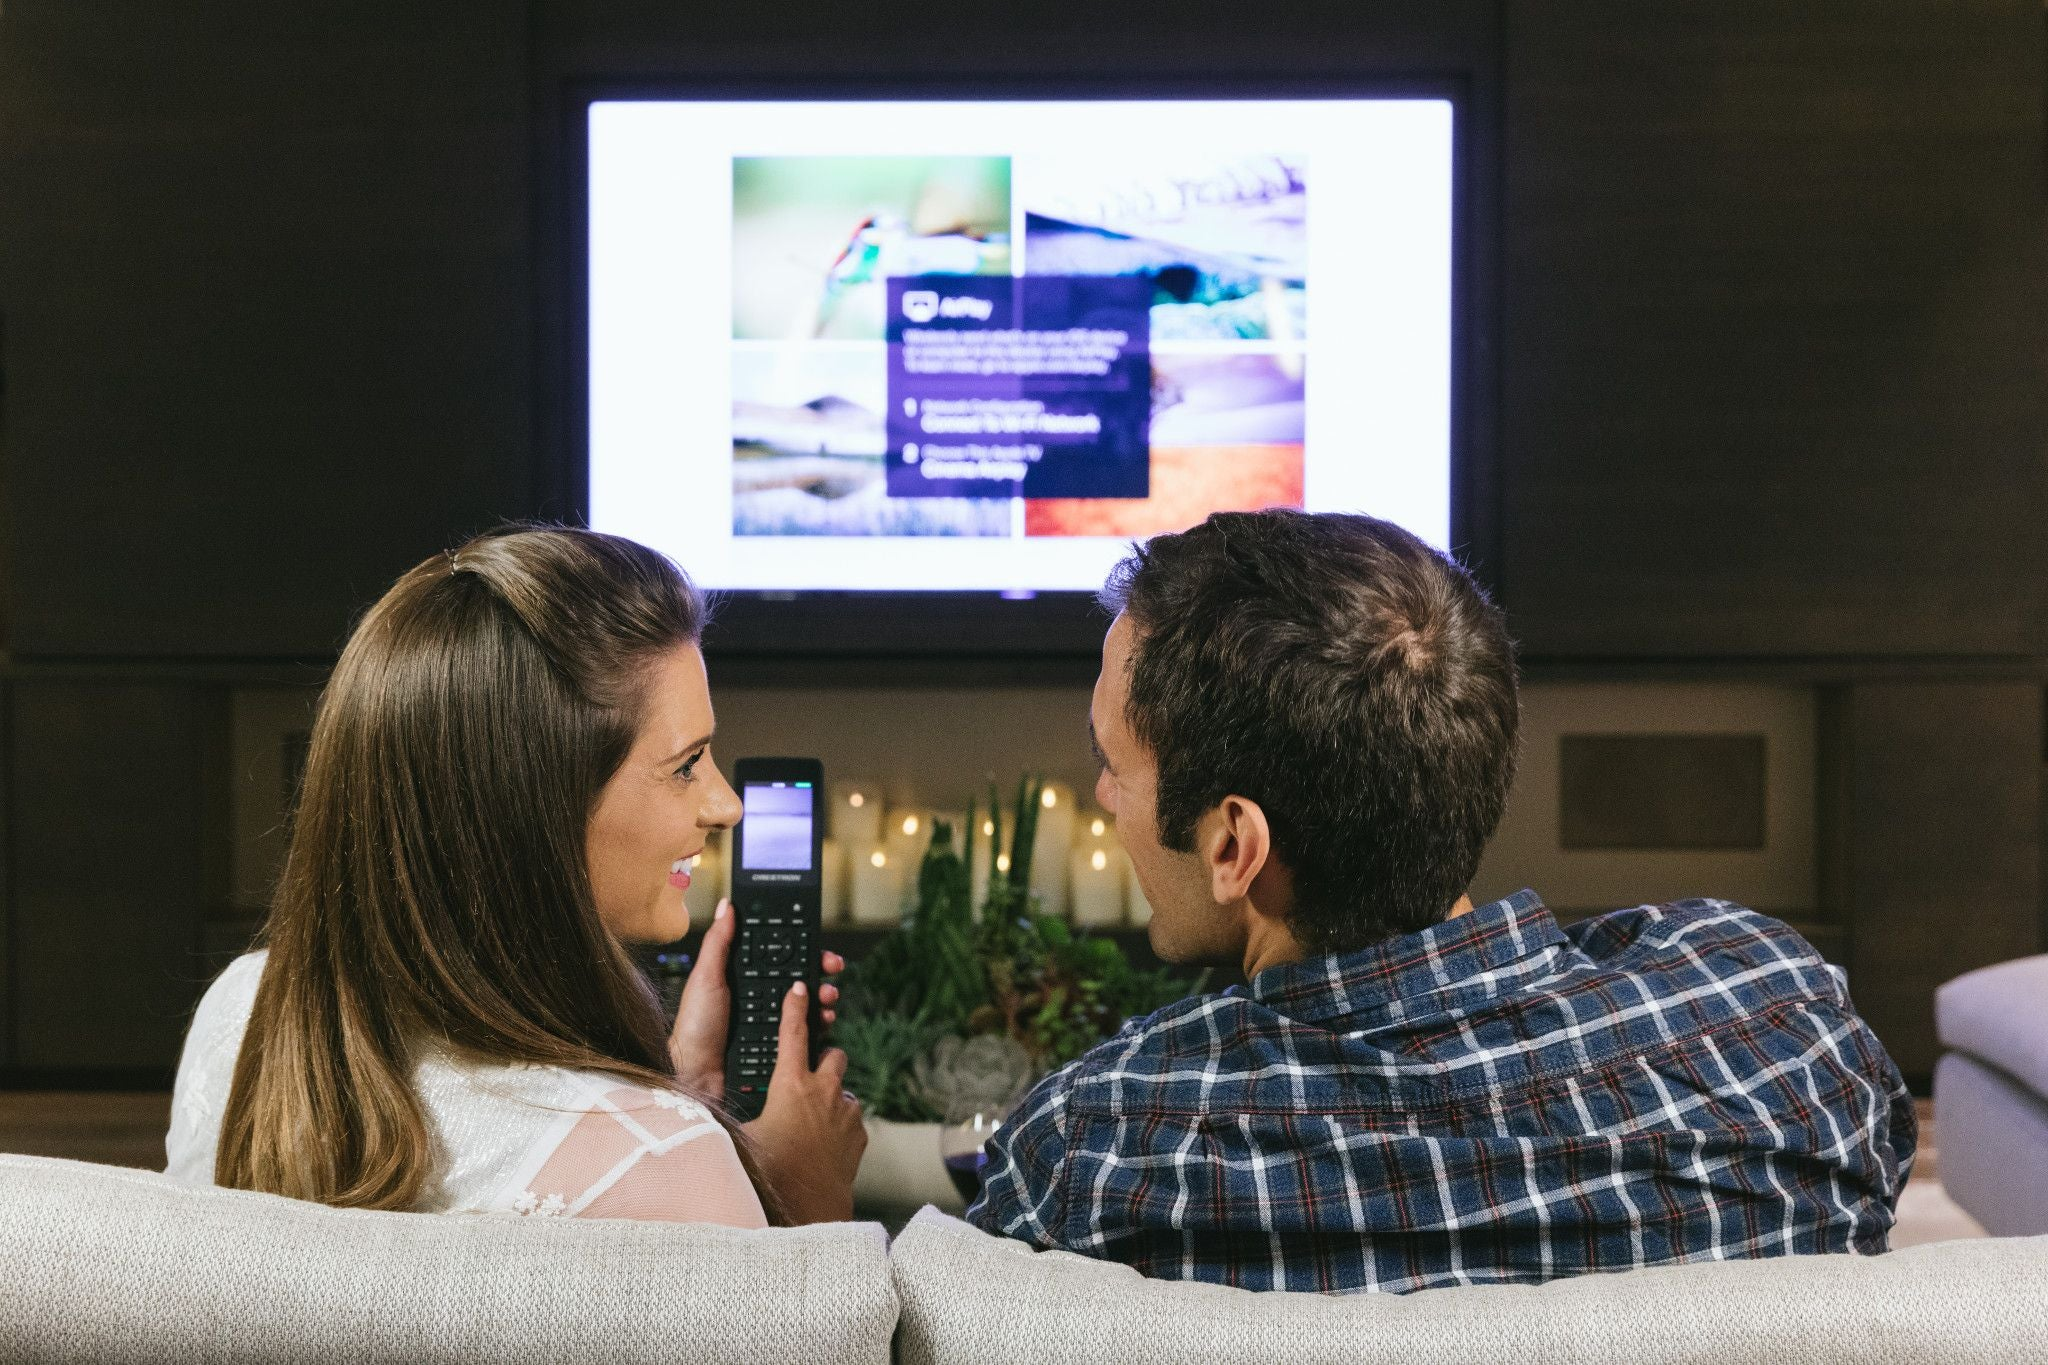 Smart home technology controlling TV